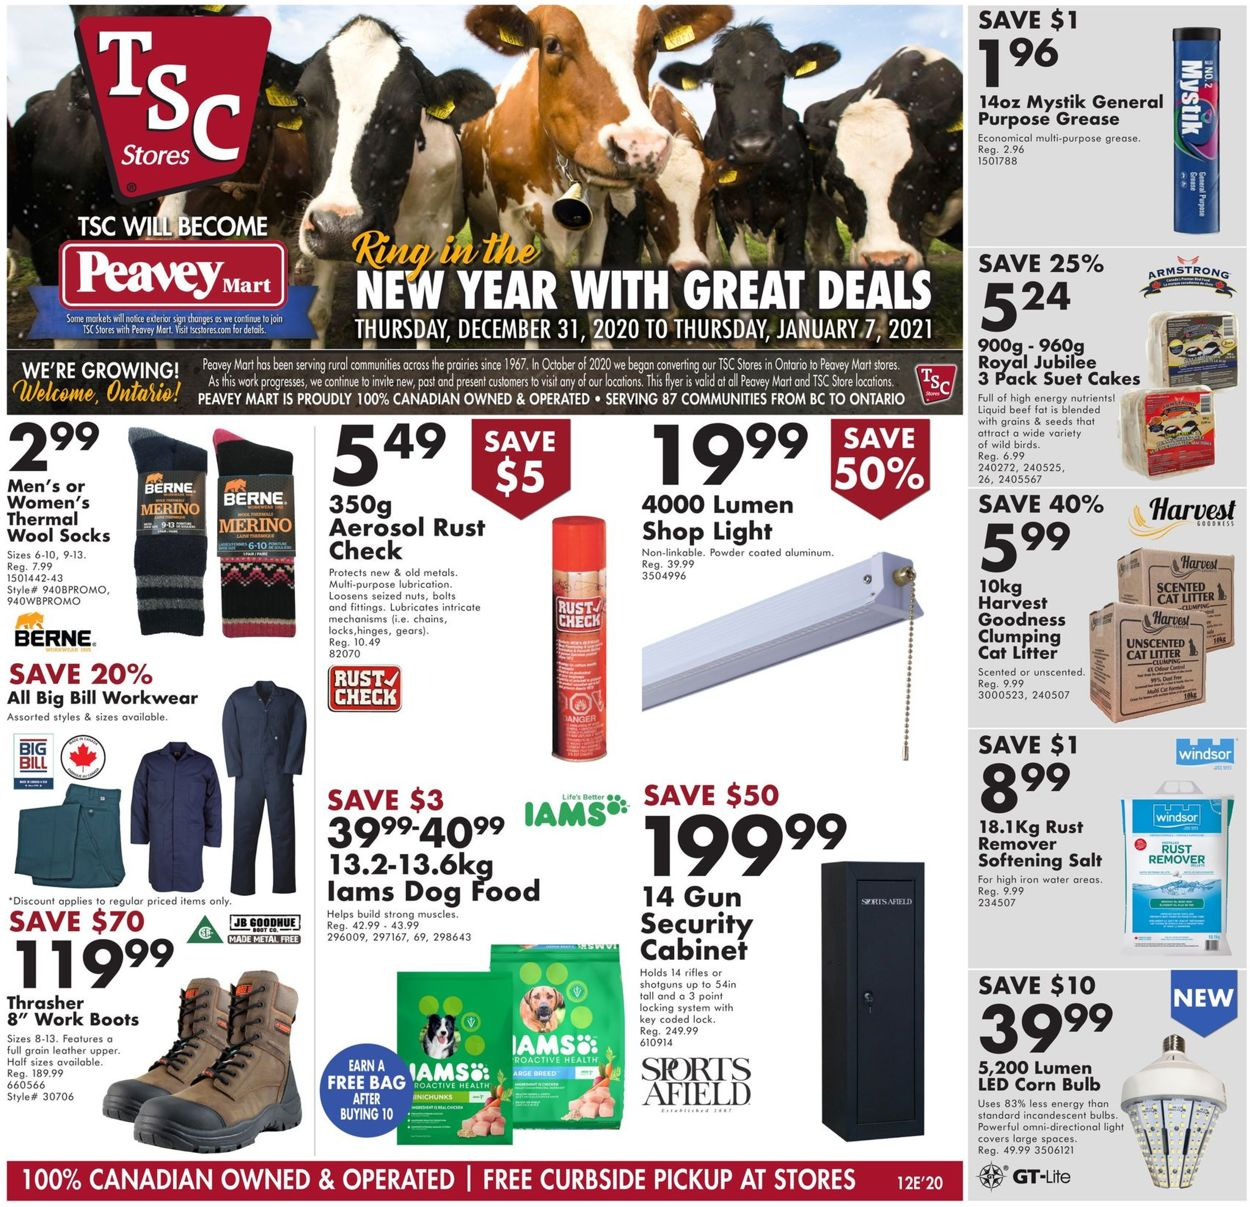 TSC Stores - New Year 2021 Flyer - 12/31-01/07/2021